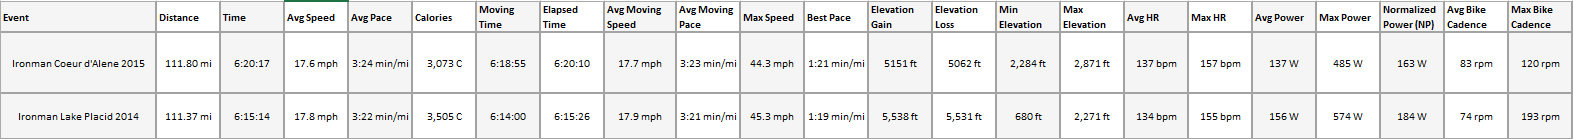 Garmin Connect IMLP vs IMCdA Ride Compare Table